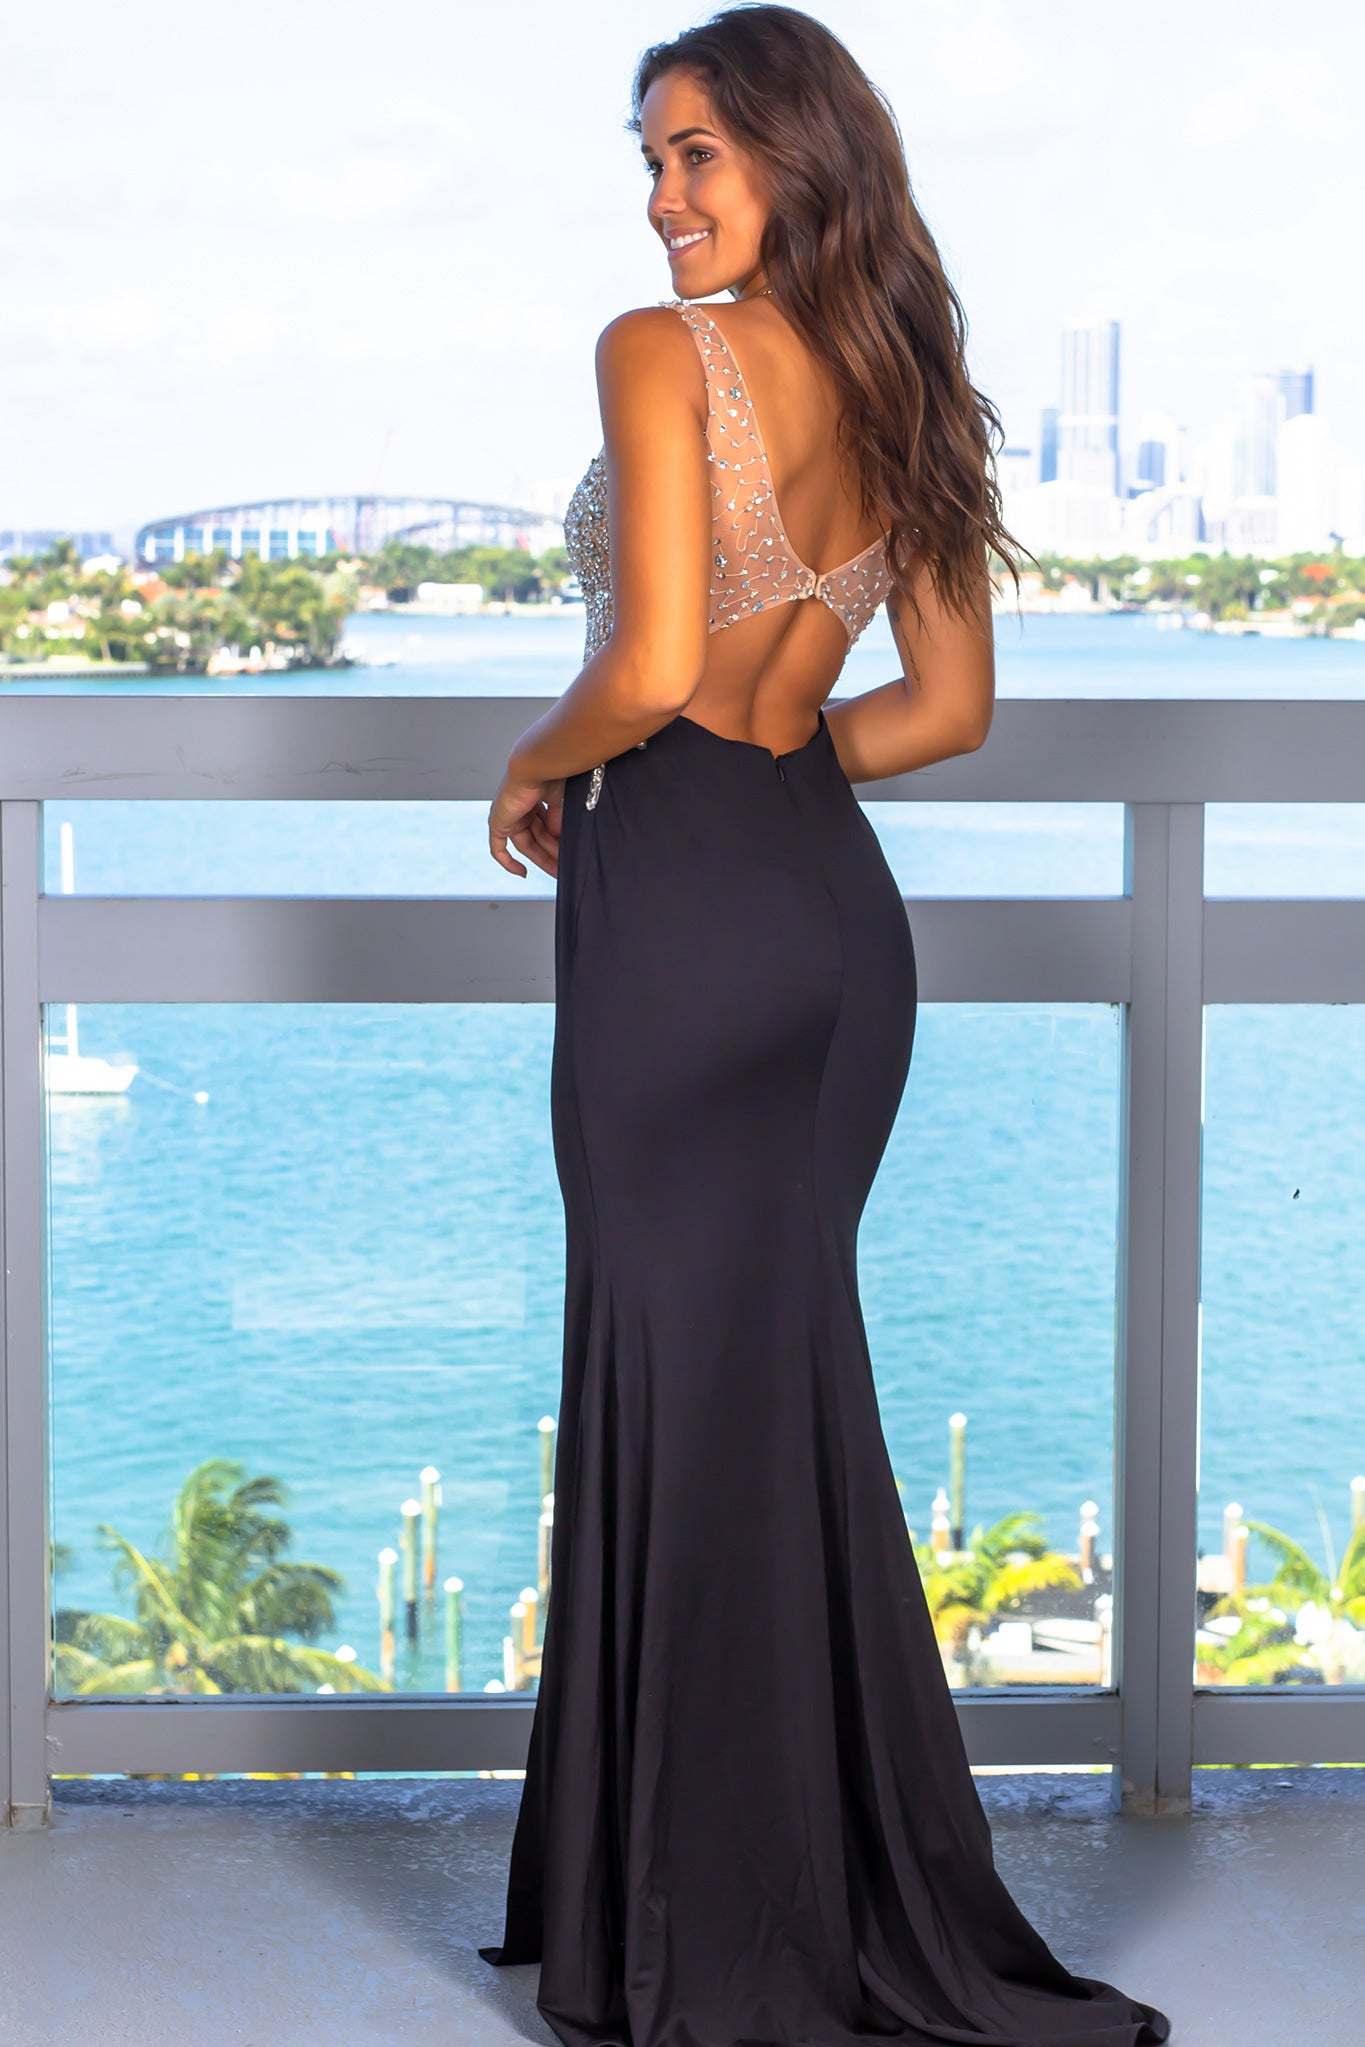 Black And Nude Jeweled Top Maxi Dress With Open Back -2560